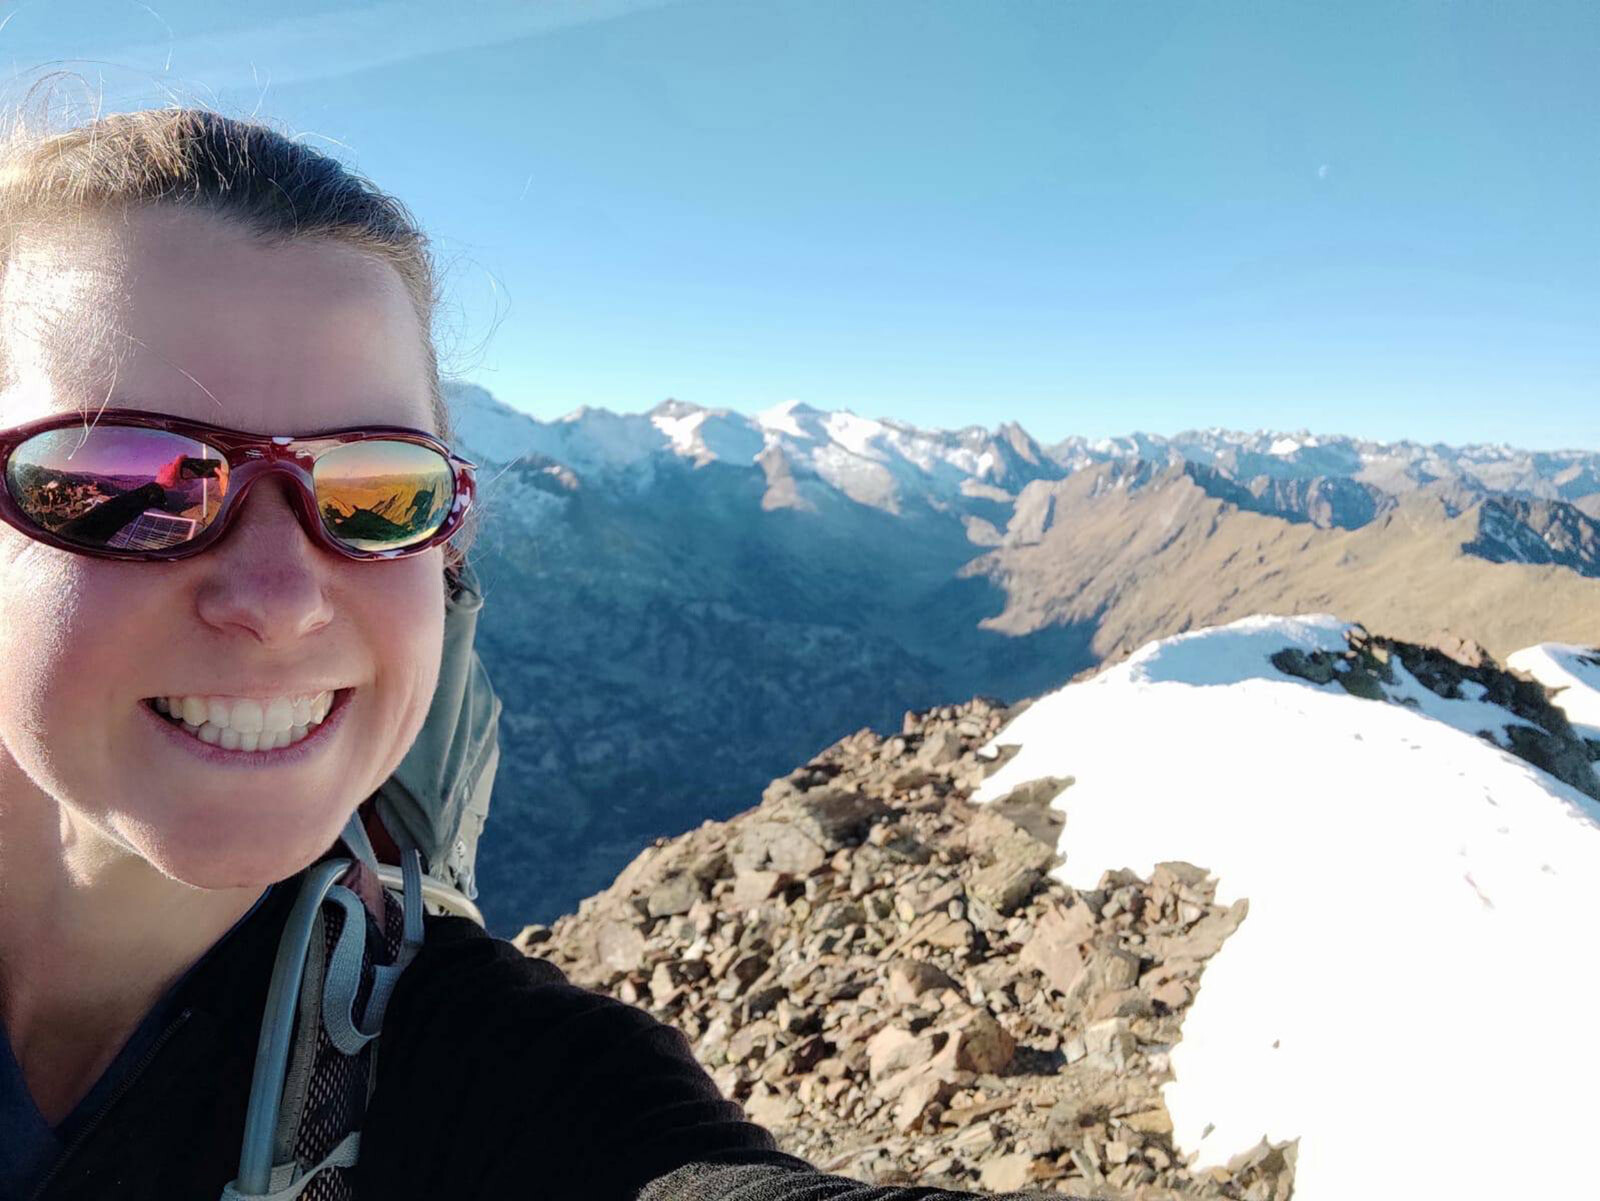 Bone confirmed to be remains of missing British hiker Esther Dingley